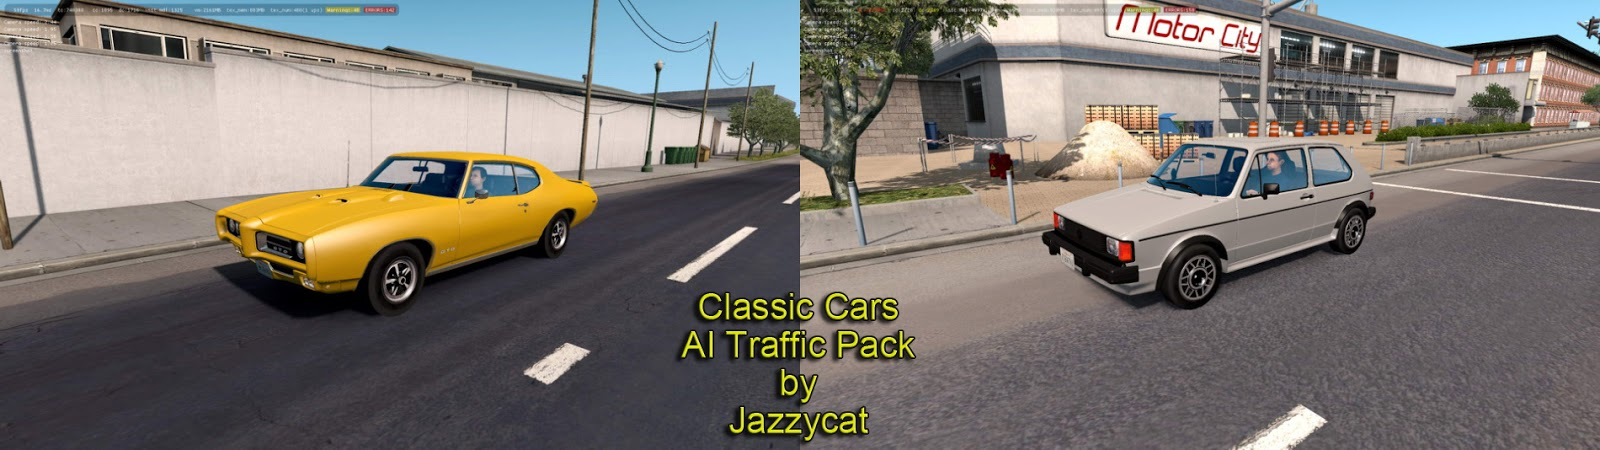 ATS - Classic Cars AI Traffic Pack v3 0 by Jazzycat